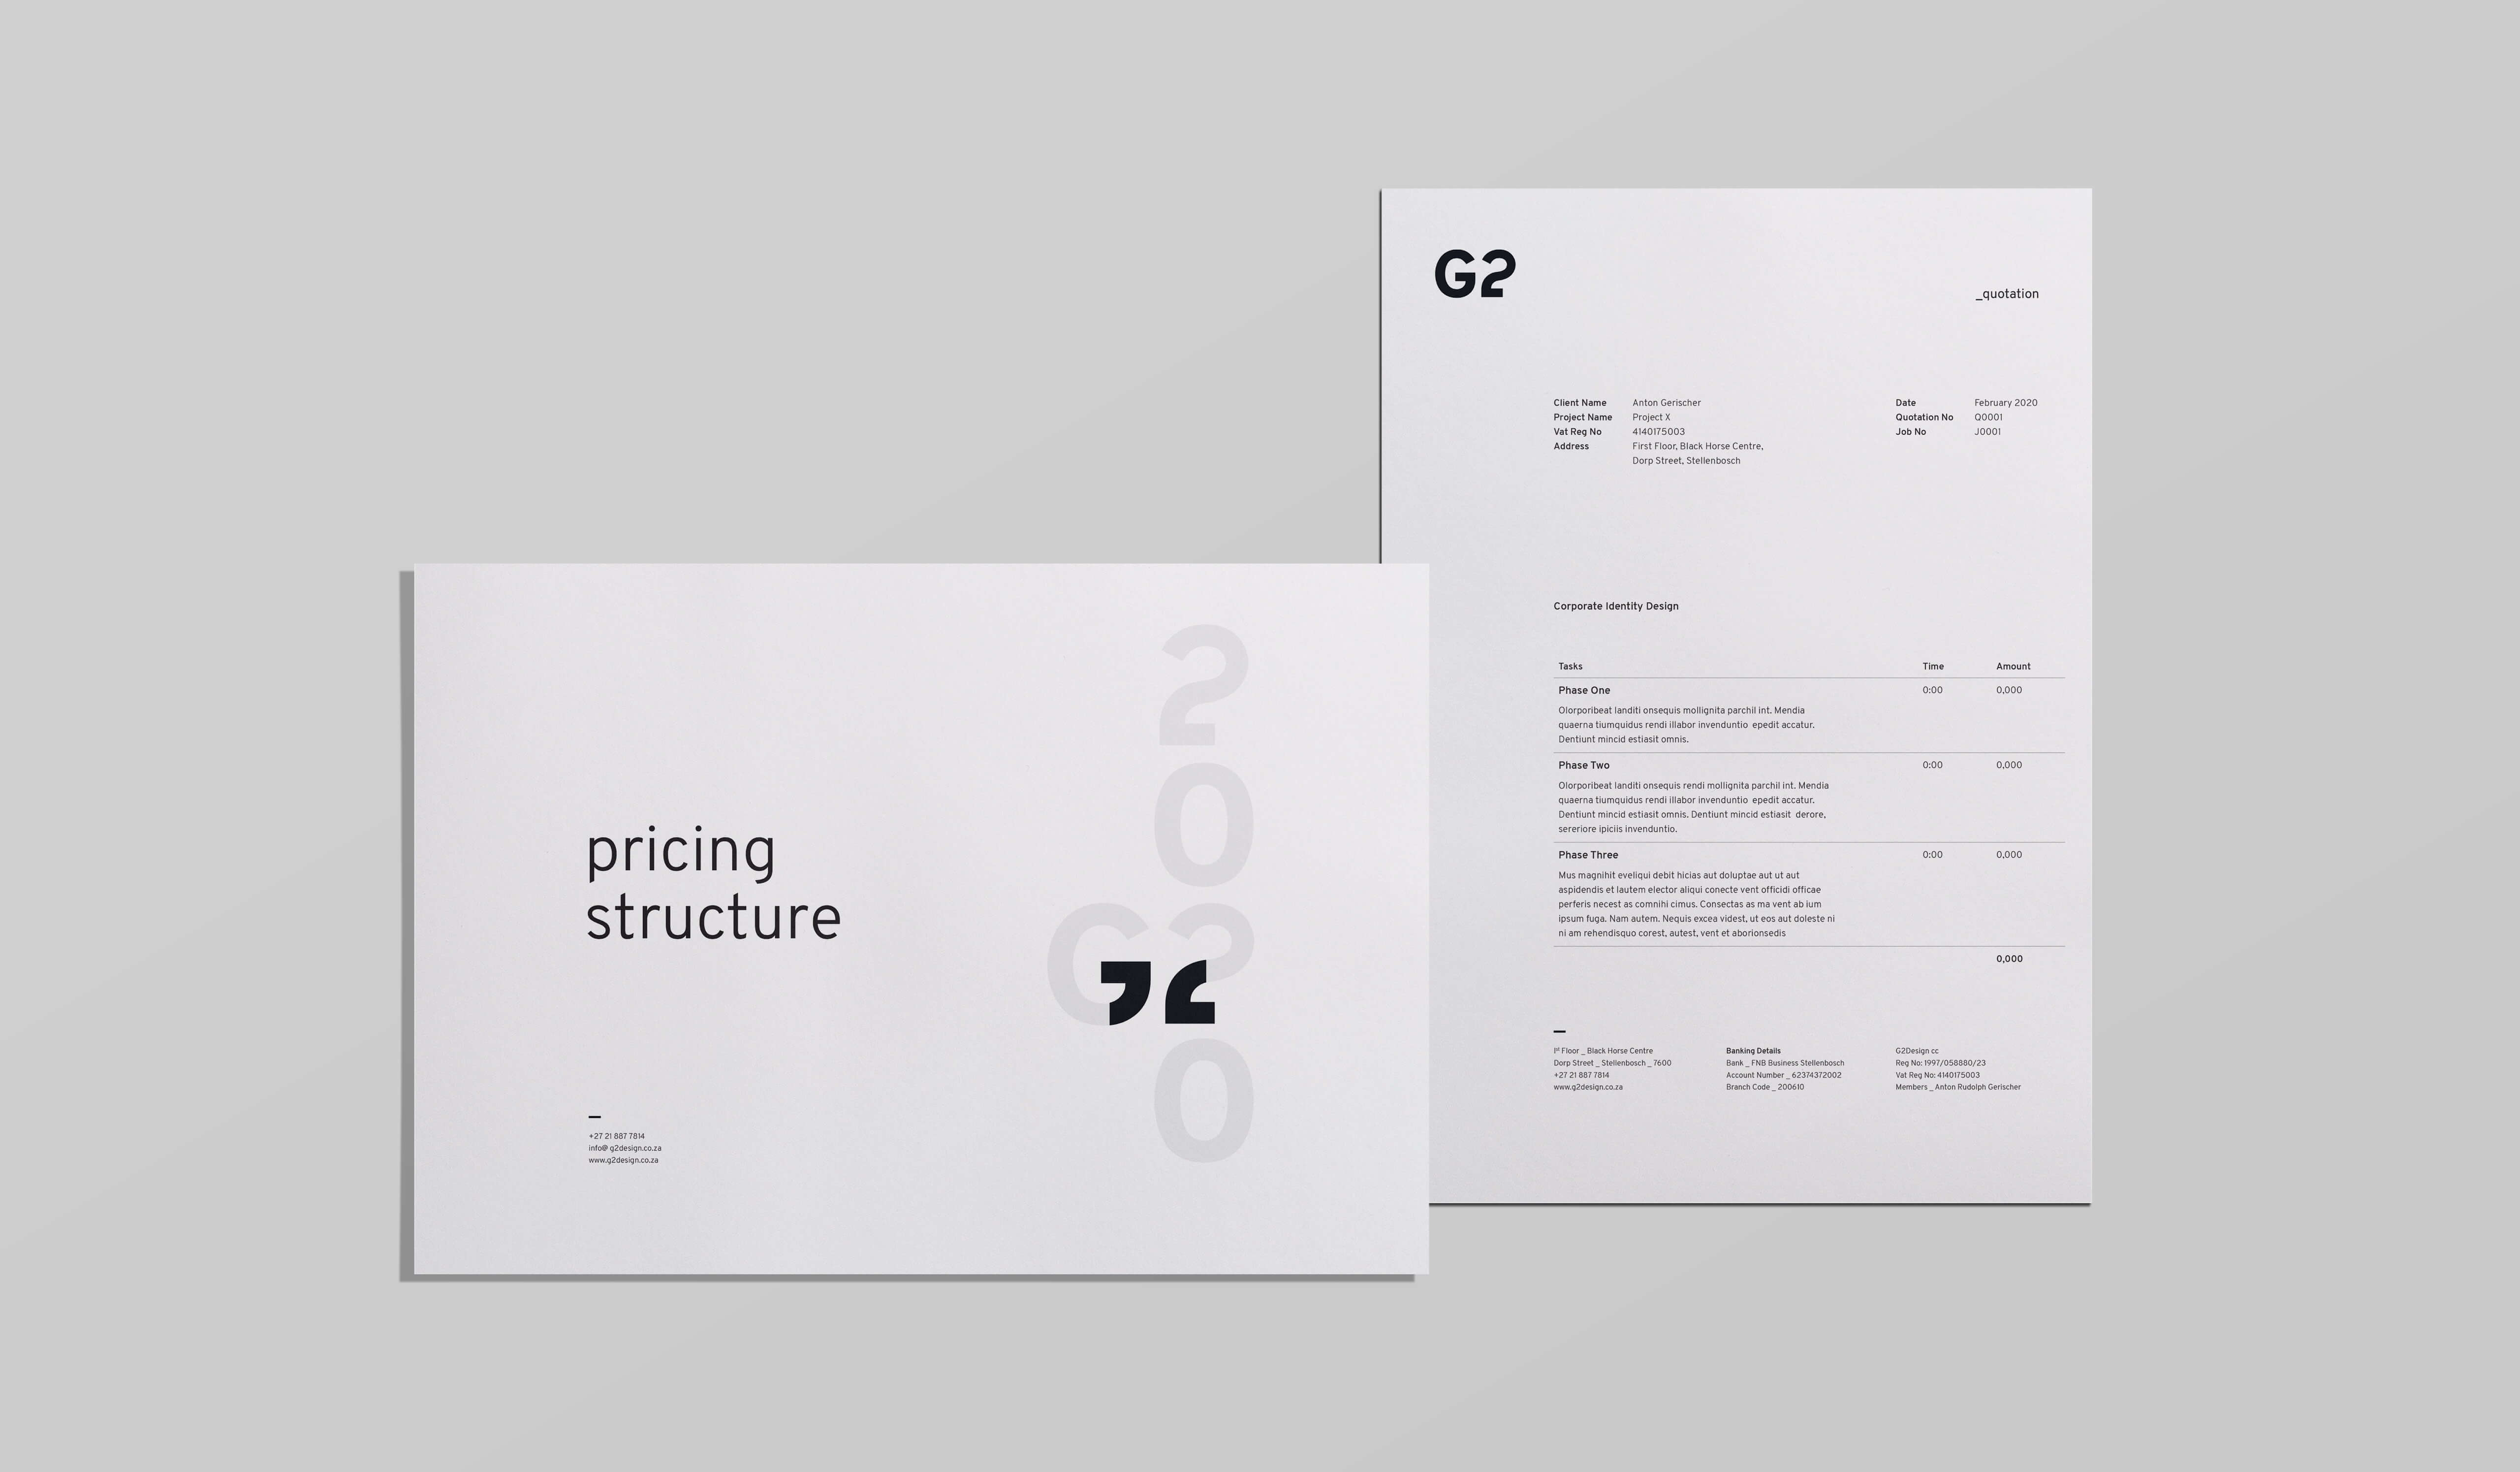 G2 quotes and invoices